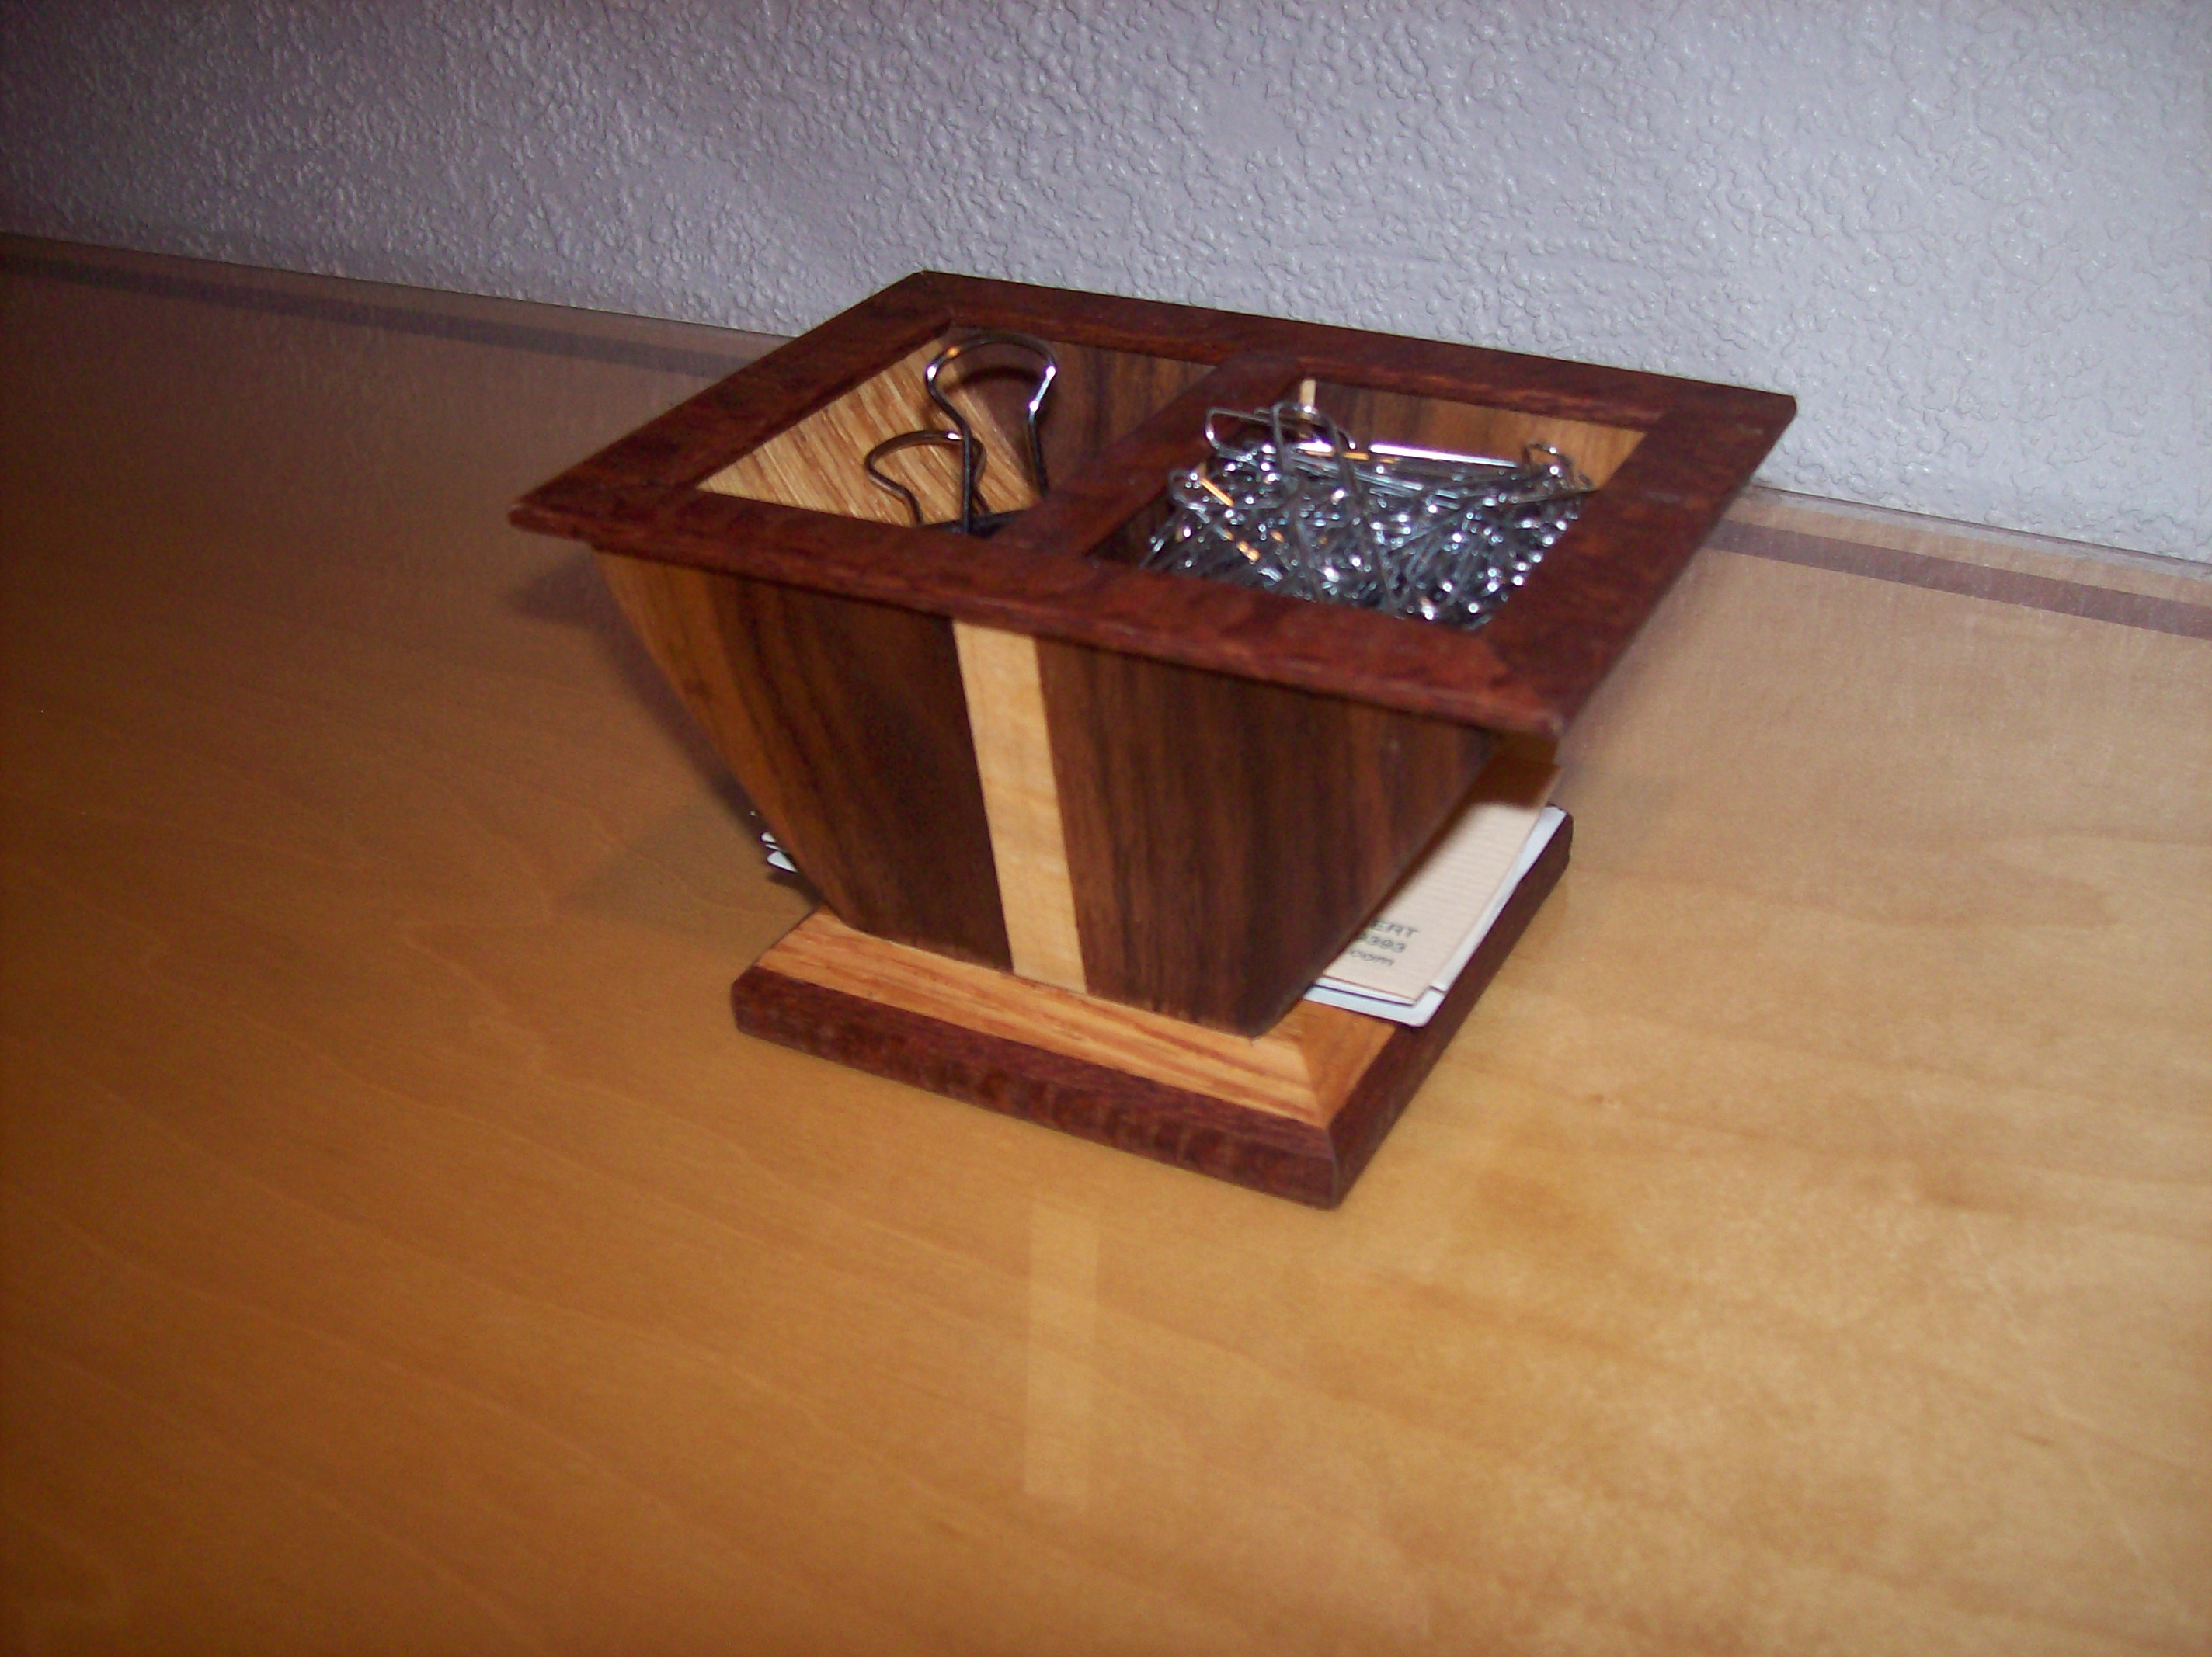 BUSINES CARD/PAPER CLIP HOLDER - W.S. Woodmasters